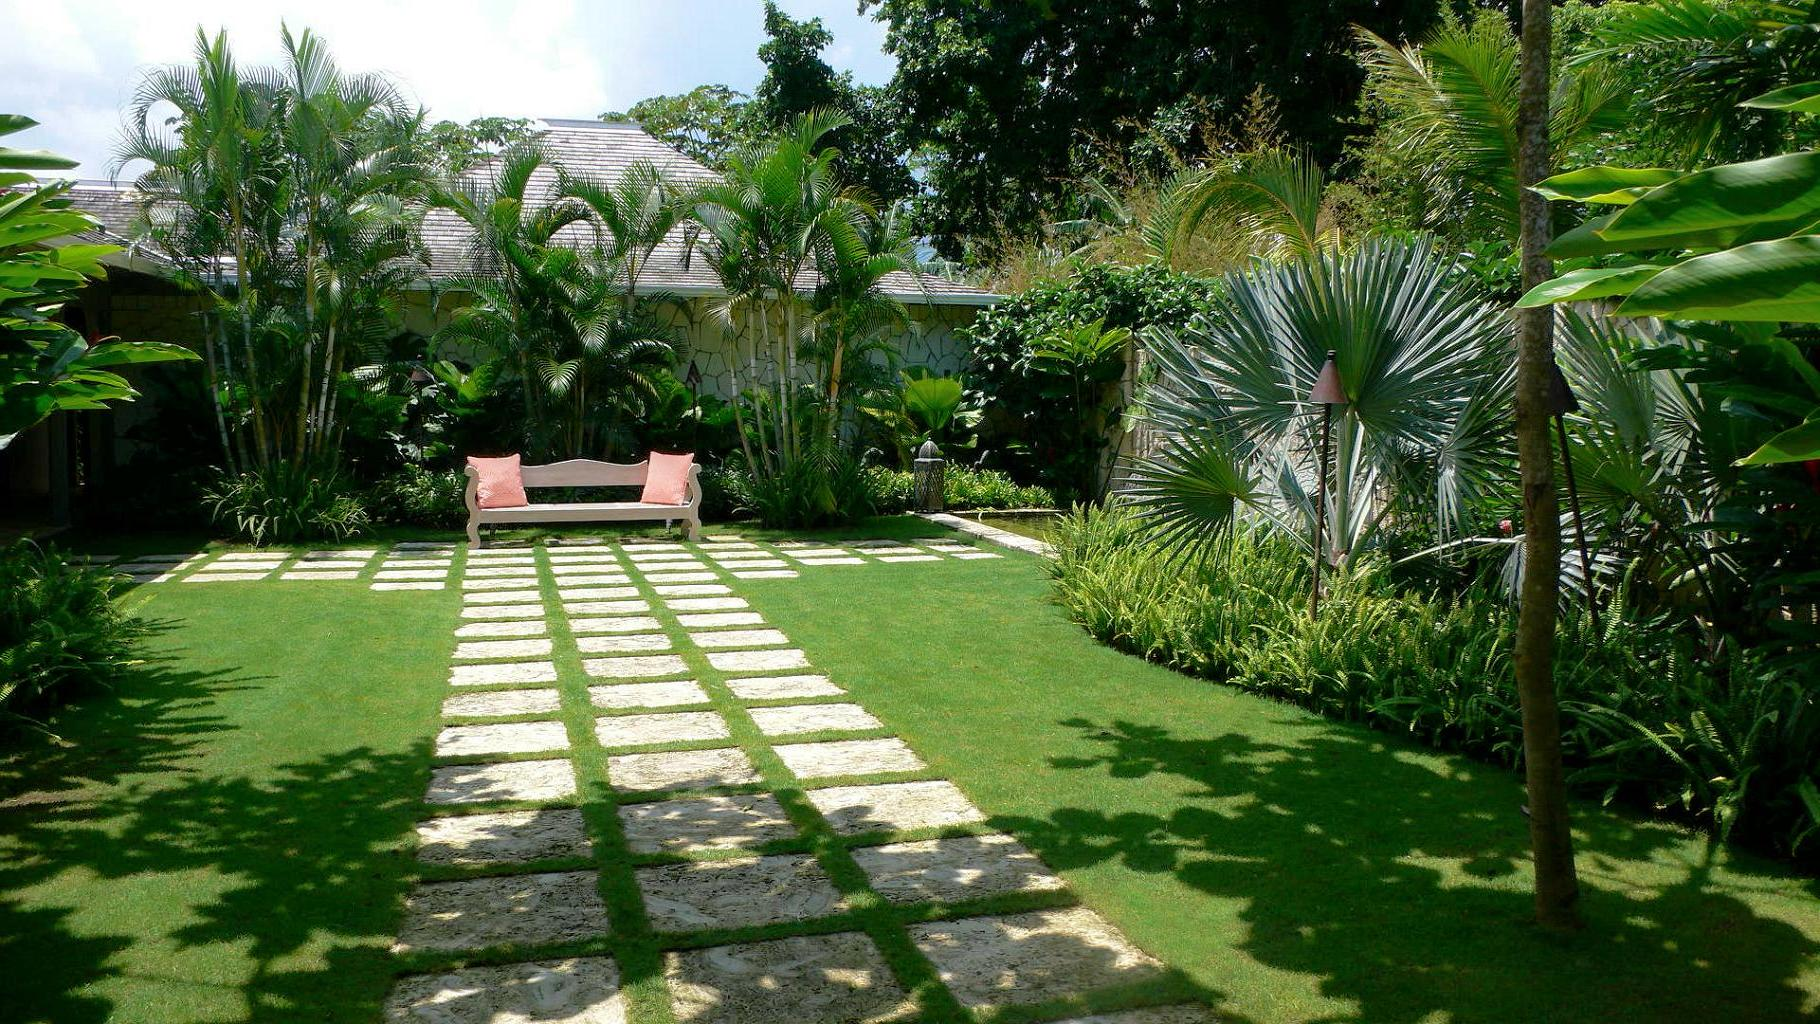 Tropical garden design landscaping in brisbane for Tropical garden design